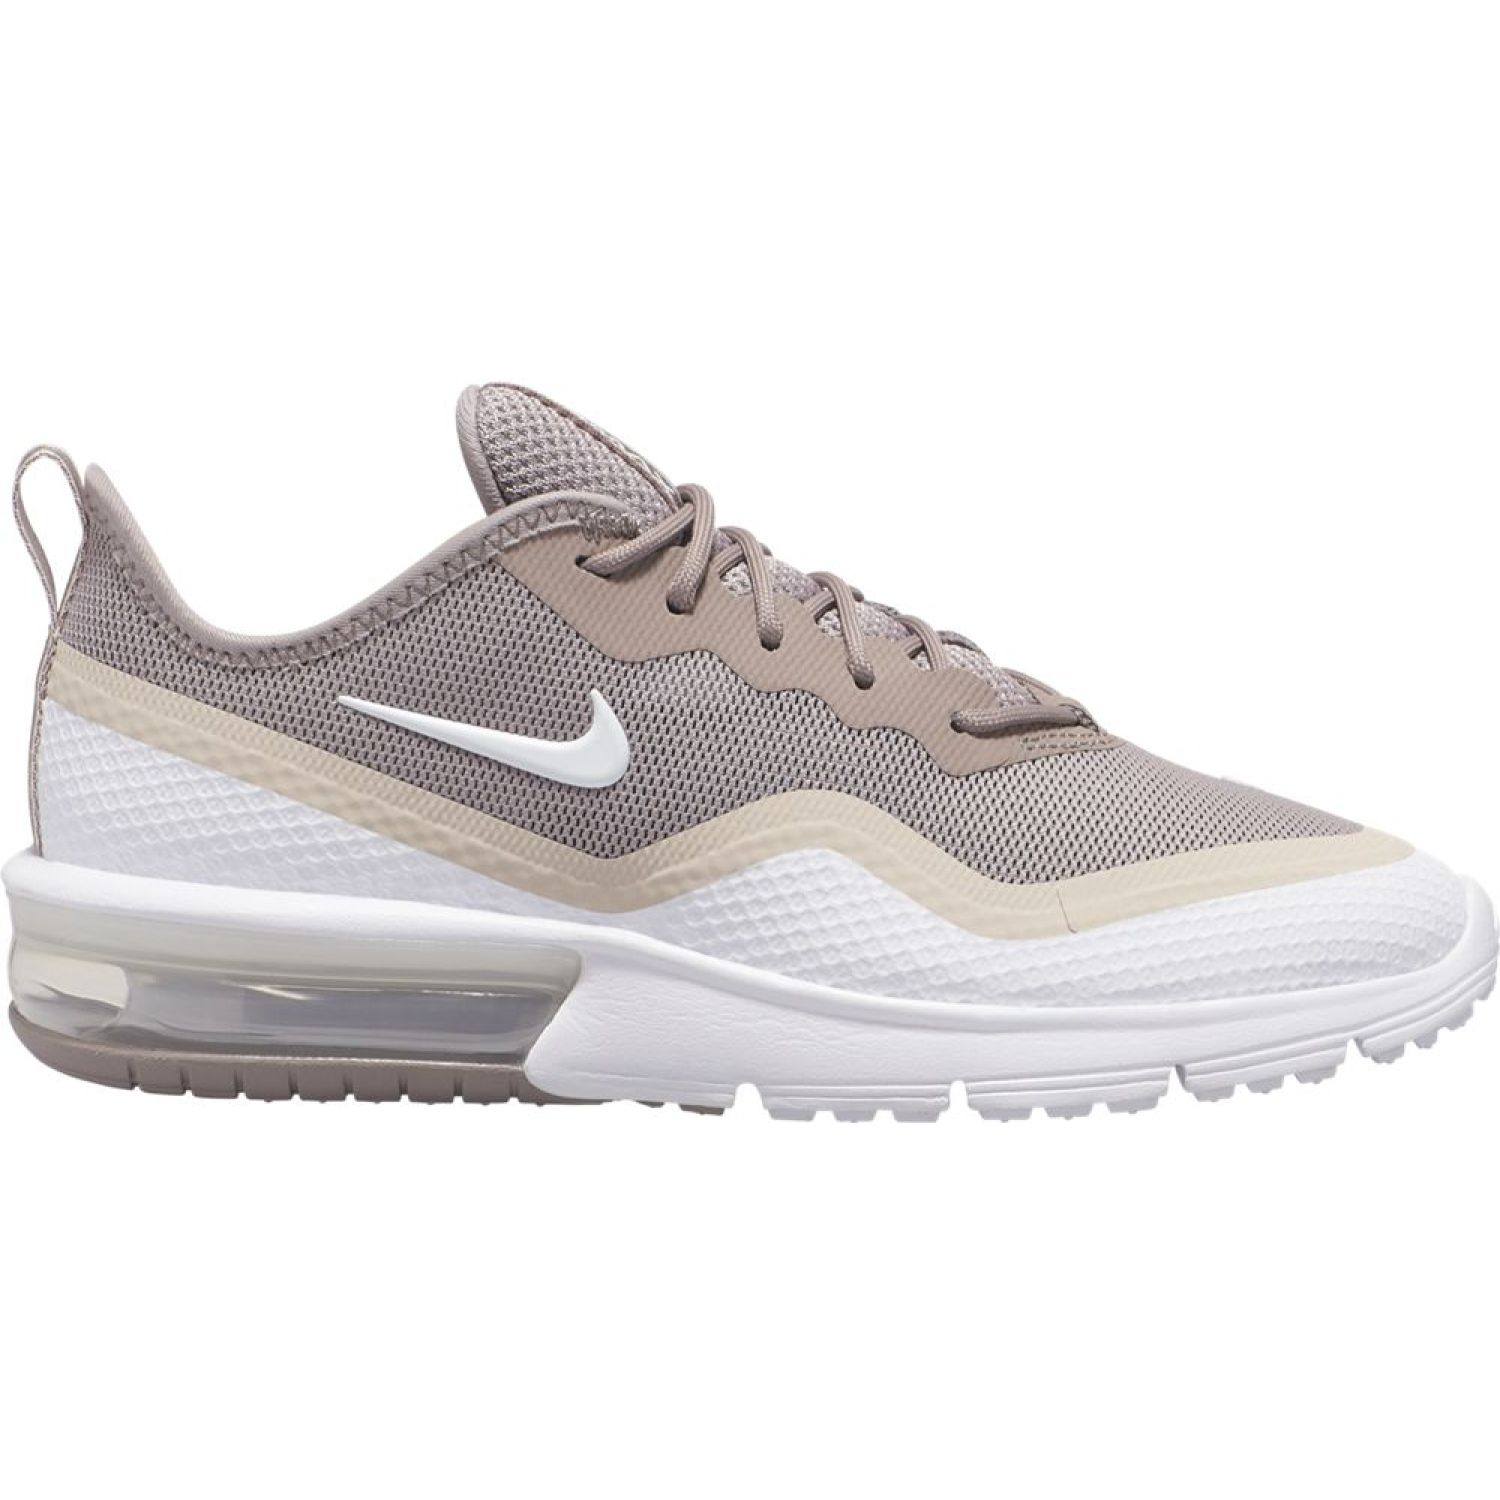 Nike WMNS NIKE AIR MAX SEQUENT 4.5 Taupe / Blanco Walking